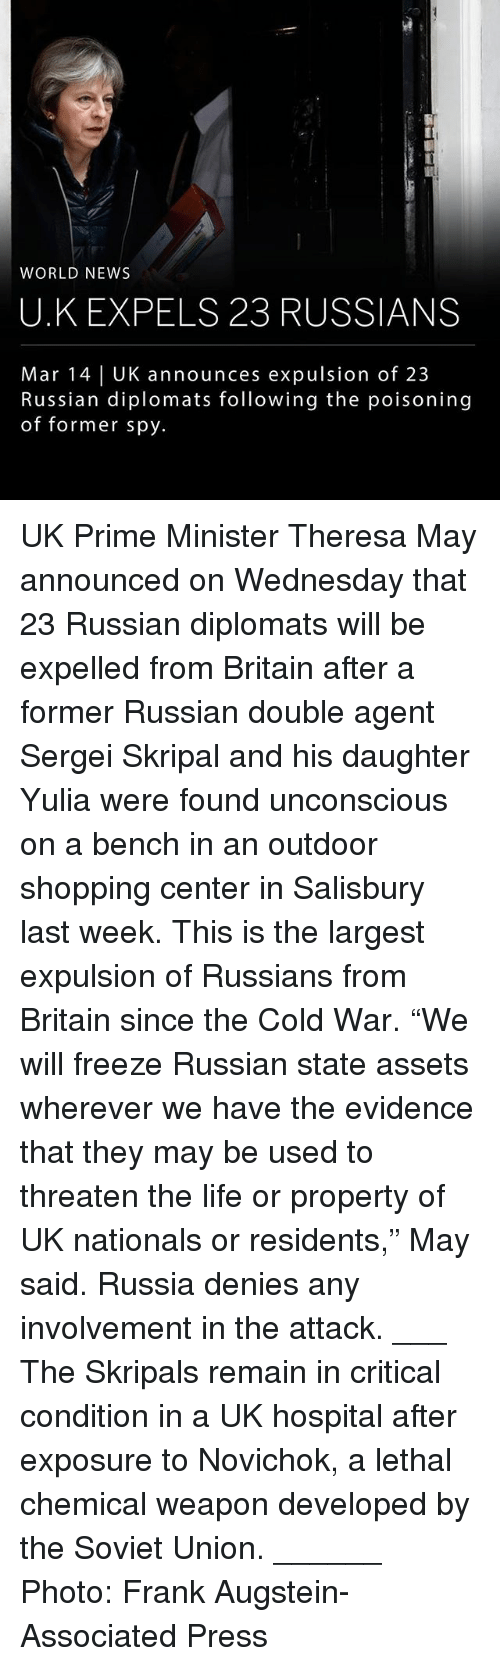 "nationals: WORLD NEWS  U.K EXPELS 23 RUSSIANS  Mar 14 | UK announces expulsion of 23  Russian diplomats following the poisoning  of former spy. UK Prime Minister Theresa May announced on Wednesday that 23 Russian diplomats will be expelled from Britain after a former Russian double agent Sergei Skripal and his daughter Yulia were found unconscious on a bench in an outdoor shopping center in Salisbury last week. This is the largest expulsion of Russians from Britain since the Cold War. ""We will freeze Russian state assets wherever we have the evidence that they may be used to threaten the life or property of UK nationals or residents,"" May said. Russia denies any involvement in the attack. ___ The Skripals remain in critical condition in a UK hospital after exposure to Novichok, a lethal chemical weapon developed by the Soviet Union. ______ Photo: Frank Augstein-Associated Press"